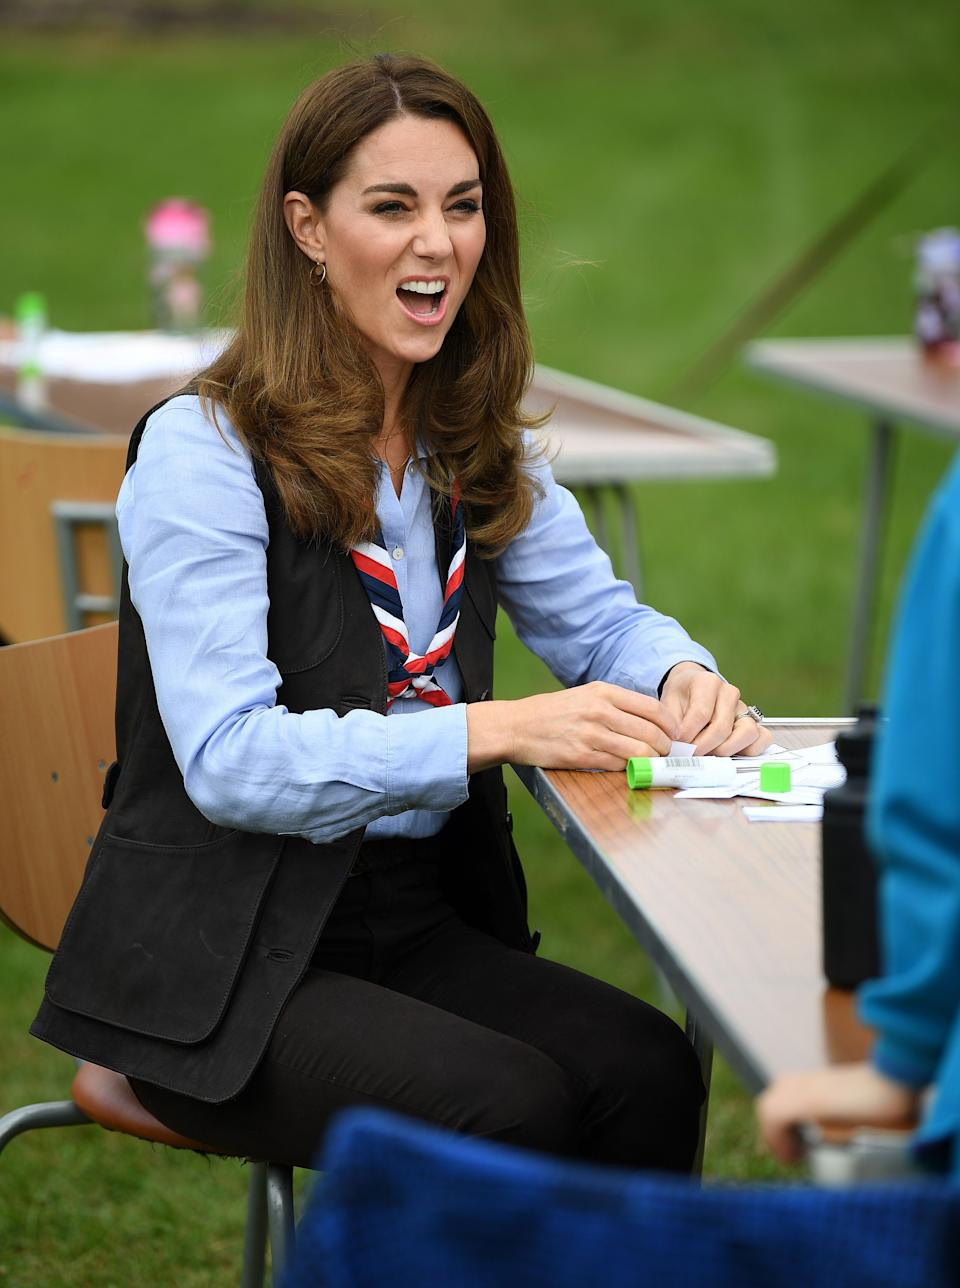 Britain's Catherine, Duchess of Cambridge talks with members of the Beavers as she visits a Scout Group in Northolt, northwest London on September 29, 2020, where she joined Cub and Beaver Scouts in outdoor activities. - The Duchess learned how the Scouts have adapted during the COVID-19 pandemic, and continued Scouting sessions and online activities. (Photo by Daniel LEAL-OLIVAS / various sources / AFP) (Photo by DANIEL LEAL-OLIVAS/AFP via Getty Images)